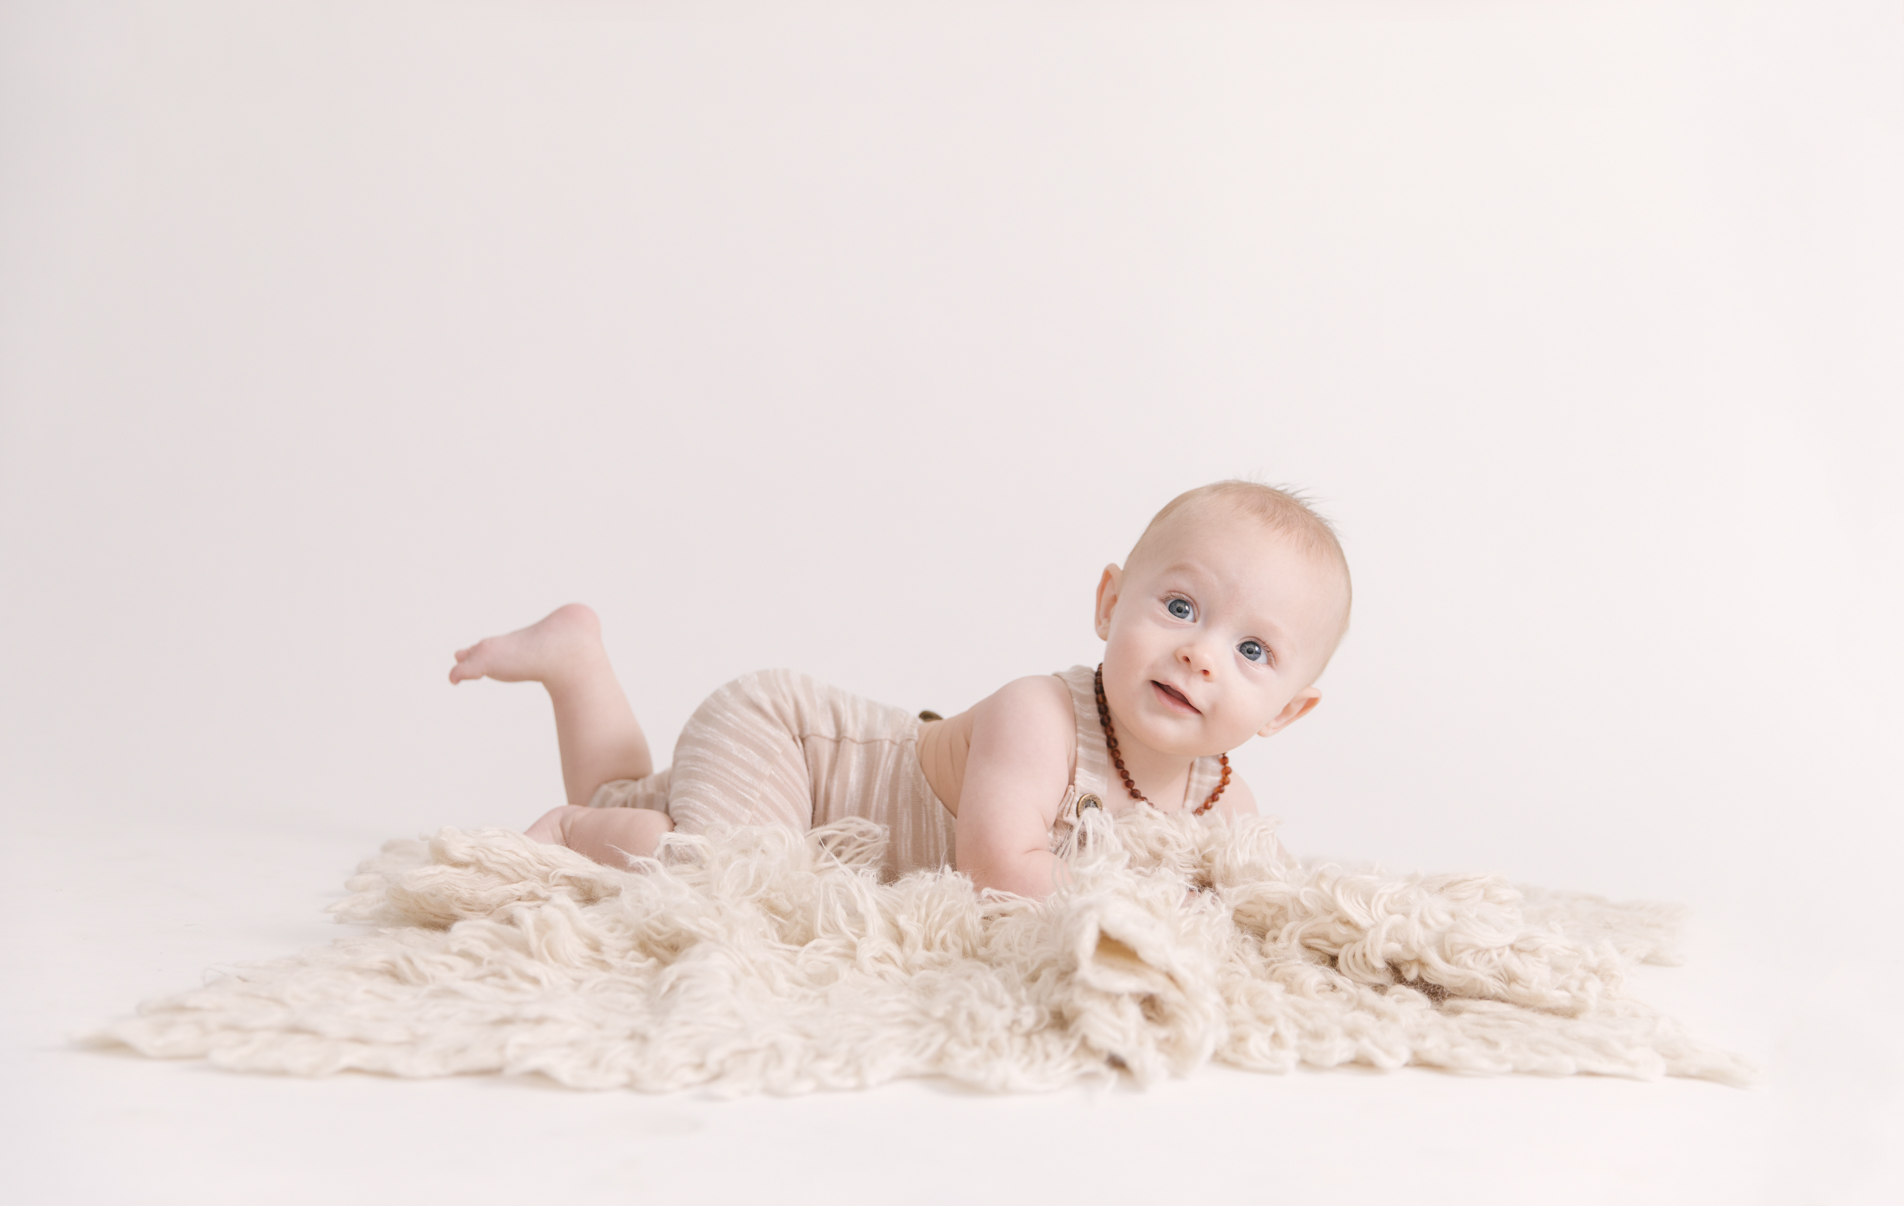 studio-milestone-session-three-six-nine-sessions-first-year-sessions-by-christie-leigh-photo-maternity-and-newborn-photographer-6.JPG